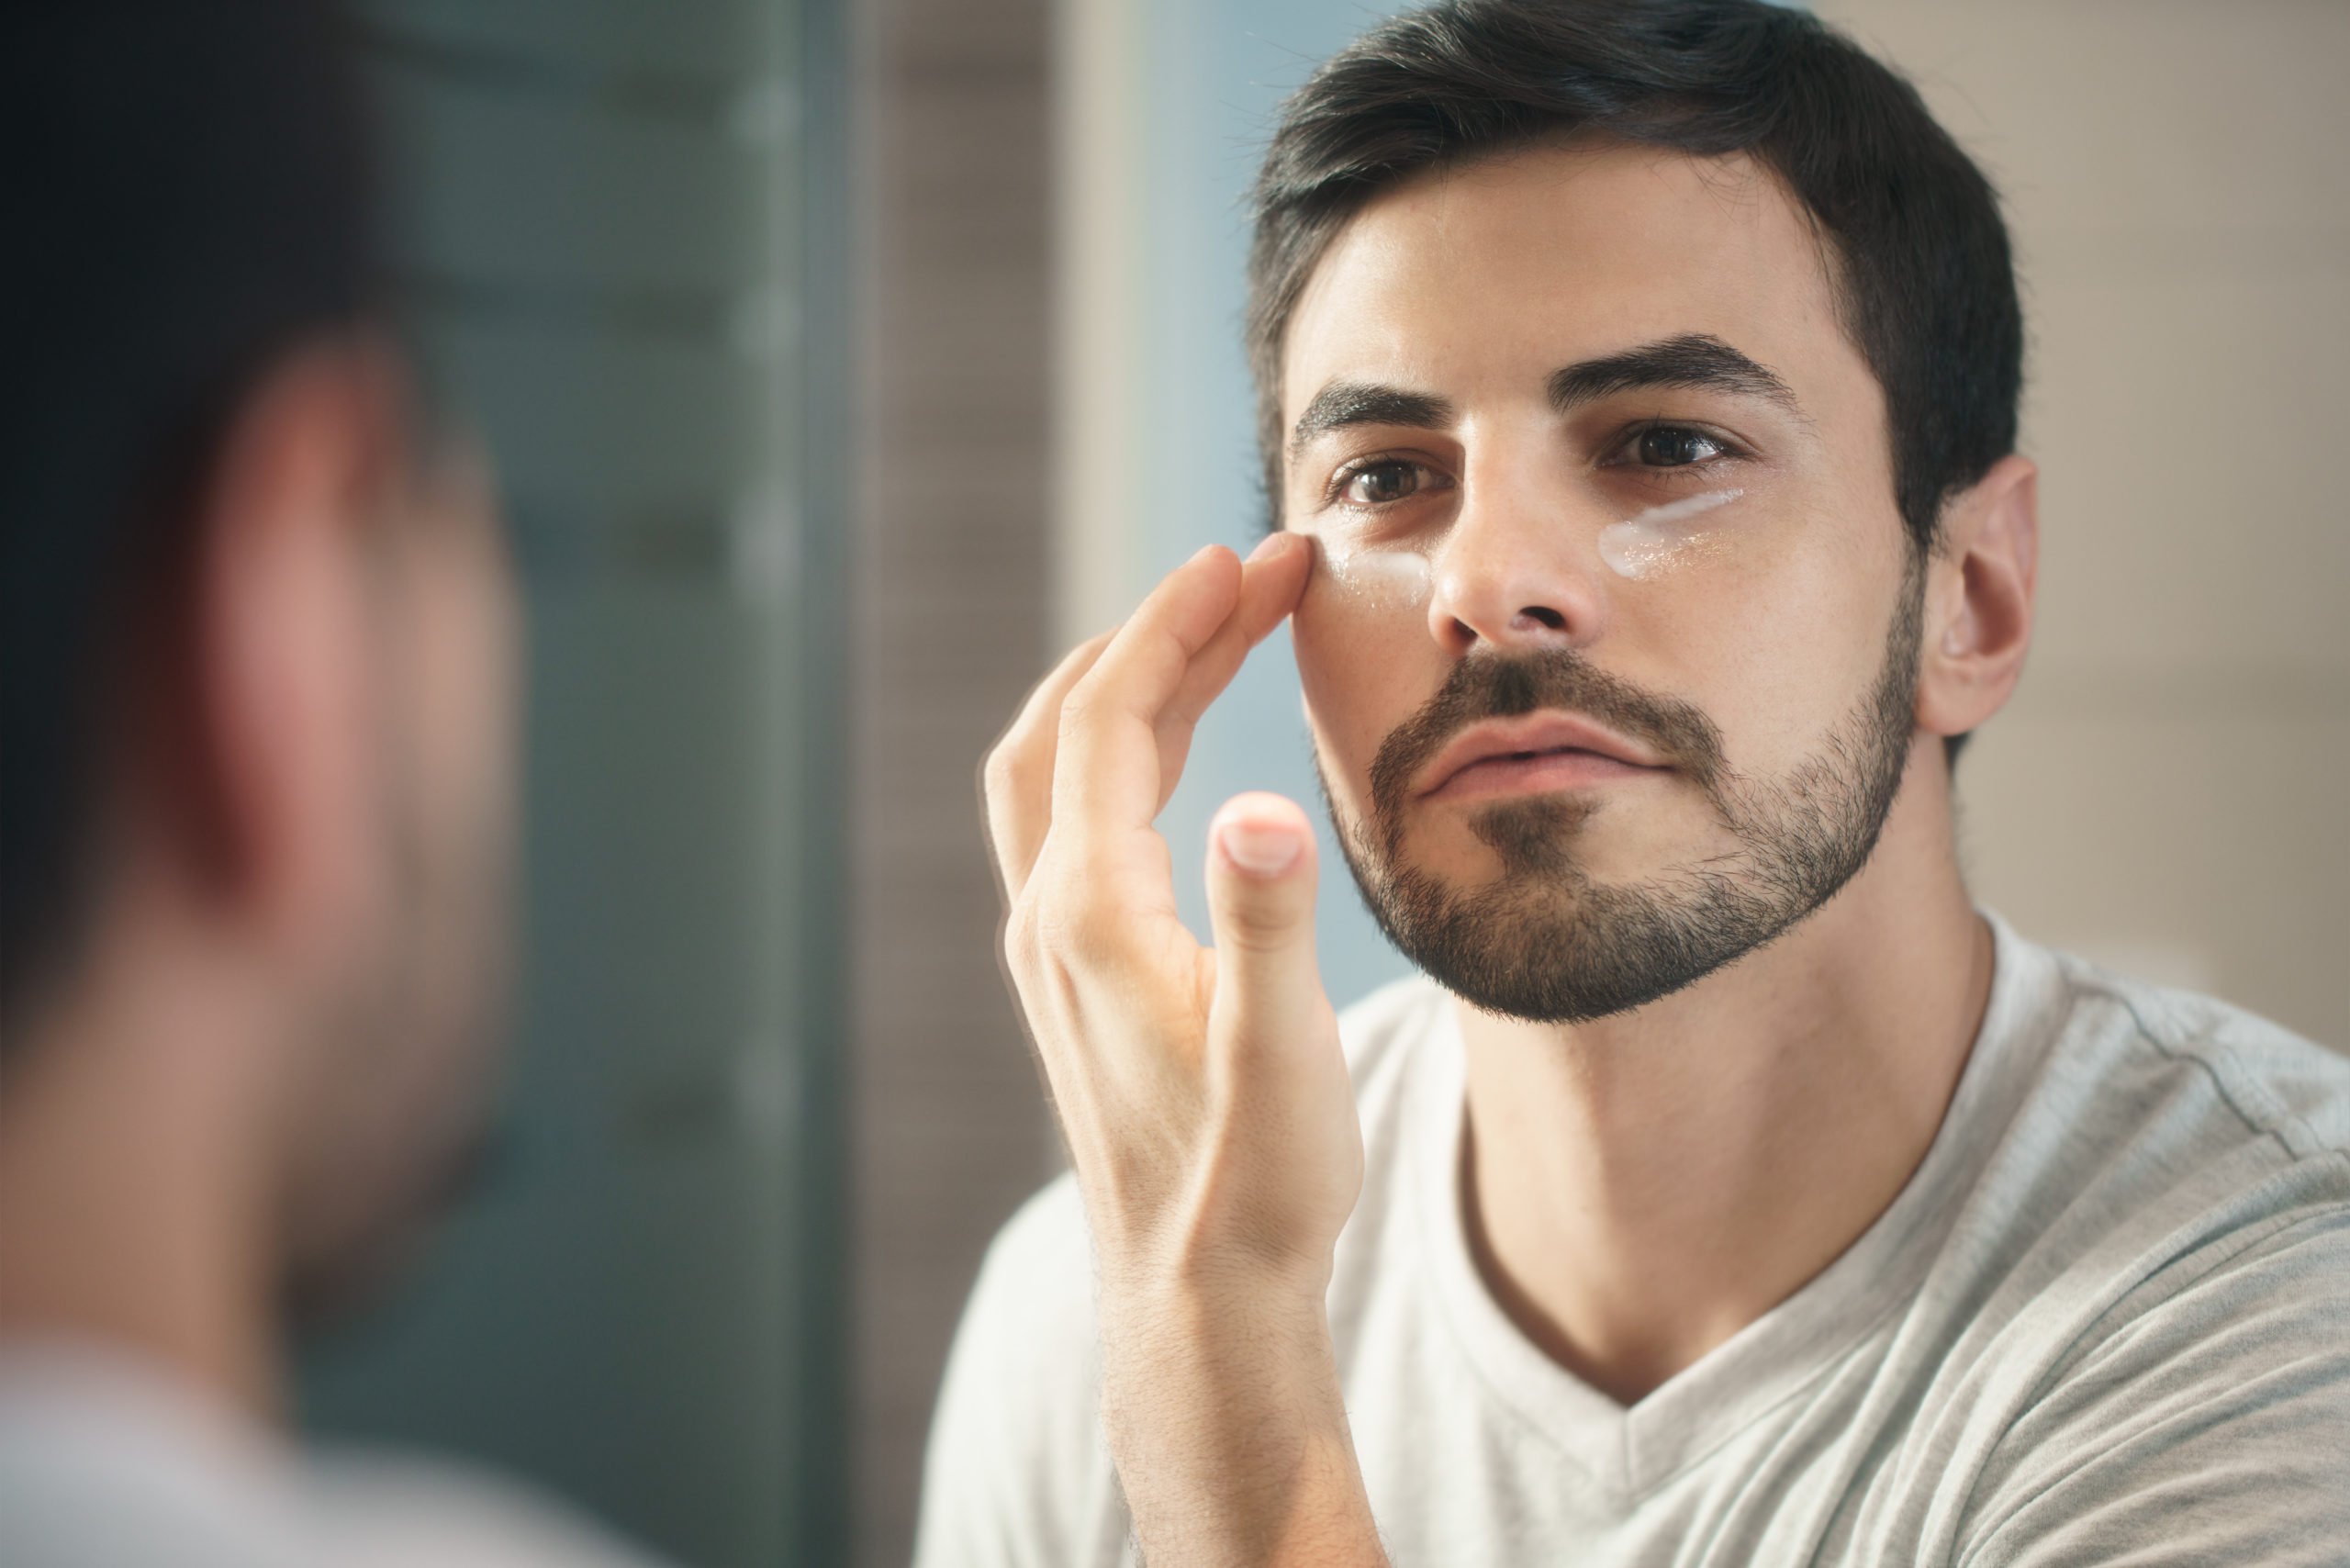 The Best Tips for Men to Get Clear Skin